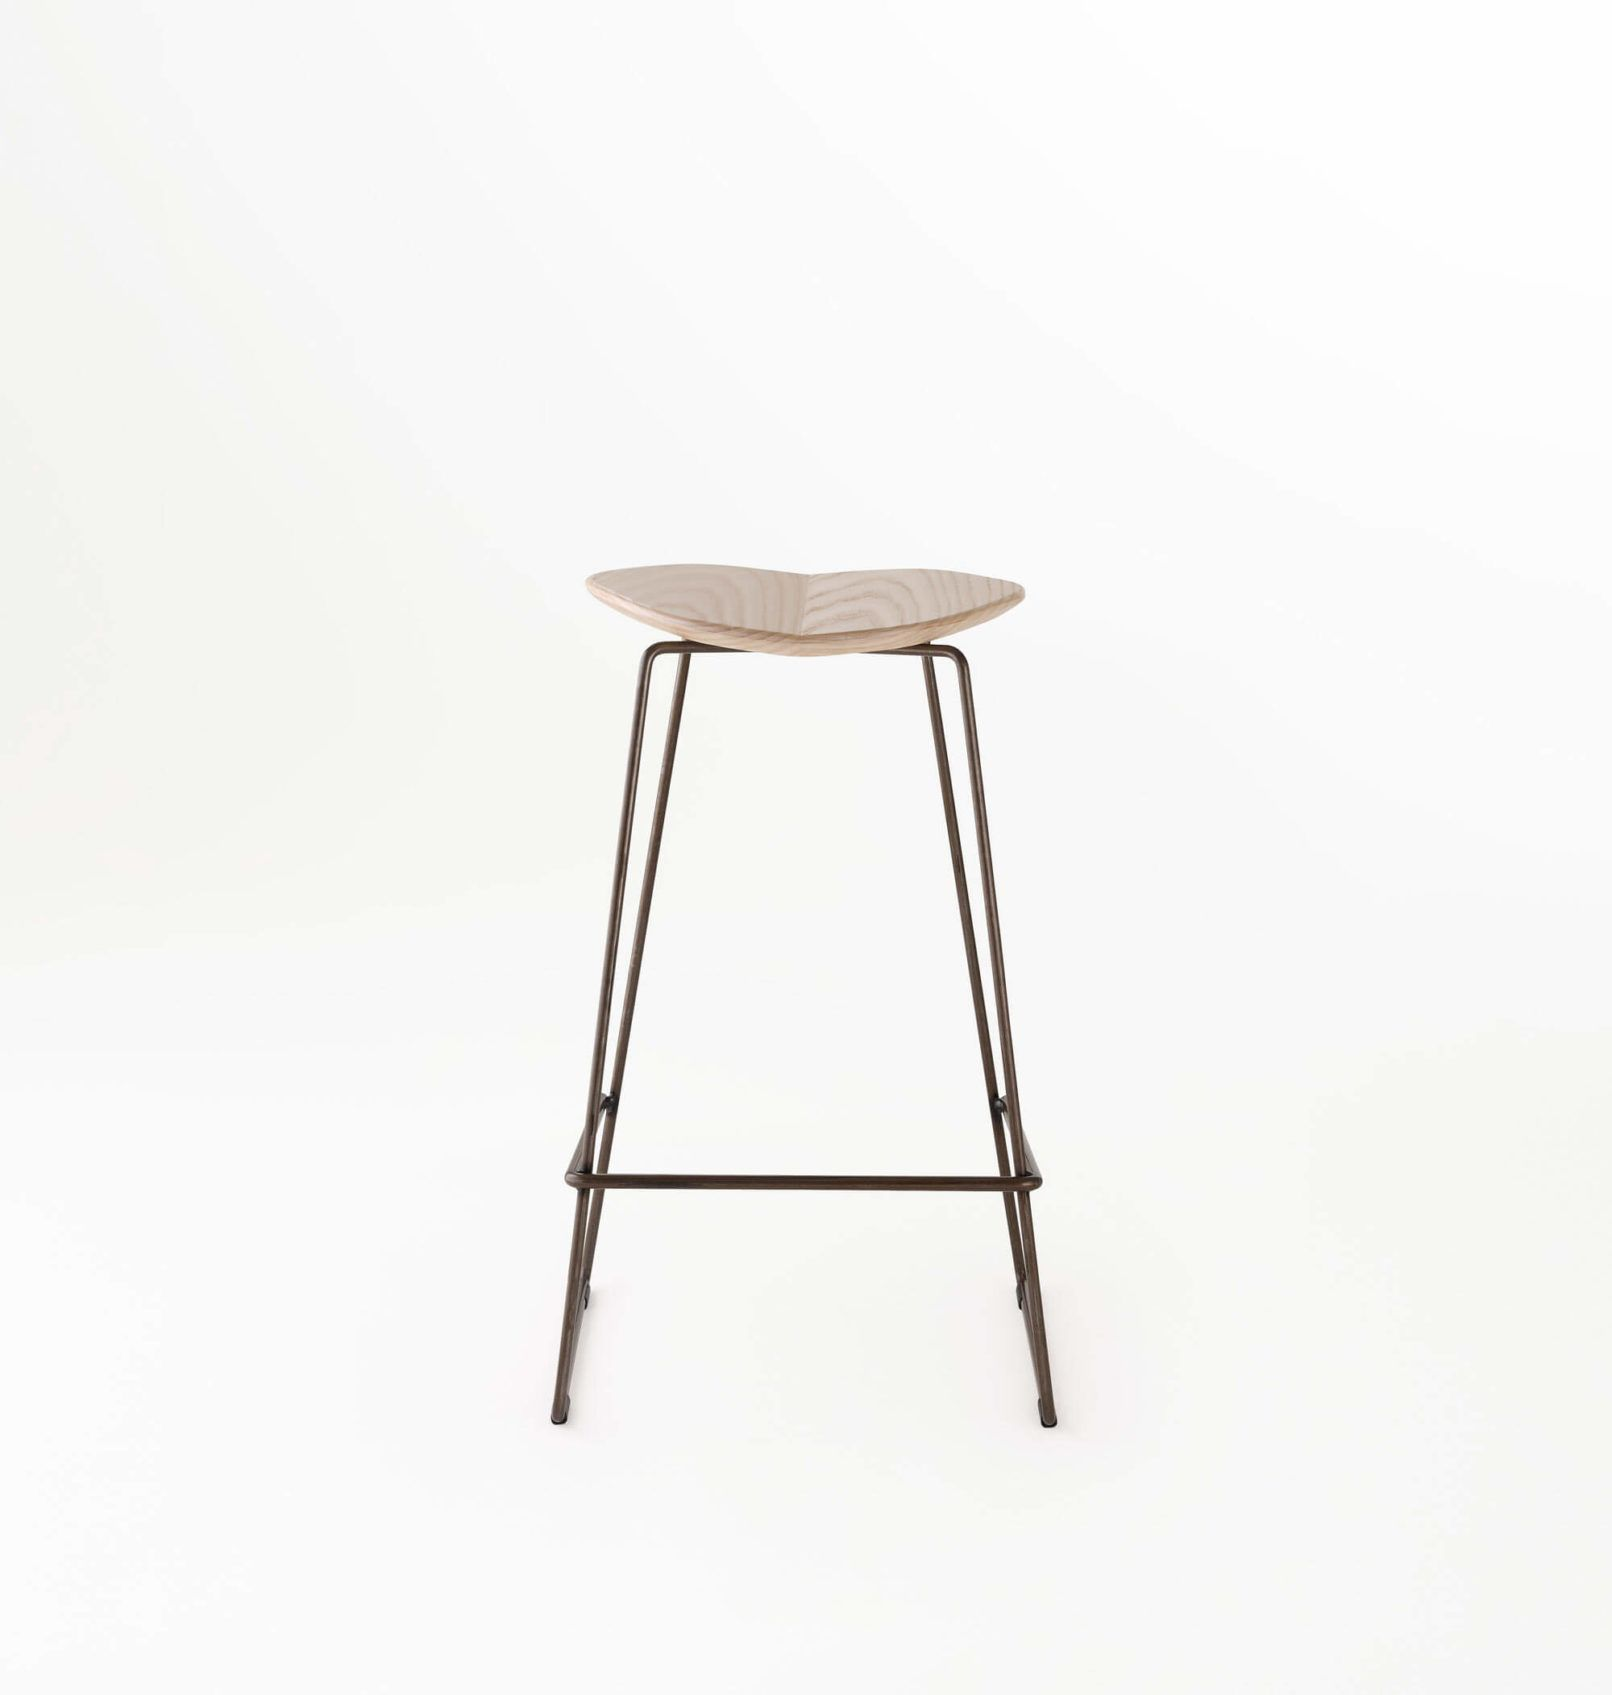 Superior The Duet Stool Features A Gently Radiused Curve To The Timber, Upholstered  Or HDPE Seat On A Slender Base For Both Indoors And Outdoors. Made In  Melbourne. Nice Look